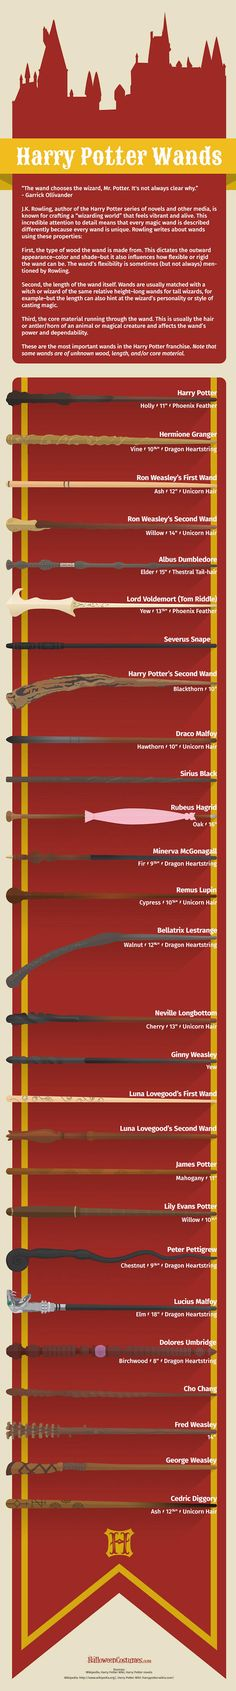 Created by online costume retailer Halloweencostumes.com, it depicts all of the wands featured throughout the Harry Potter series, describing their lengths and materials. | Mental Floss